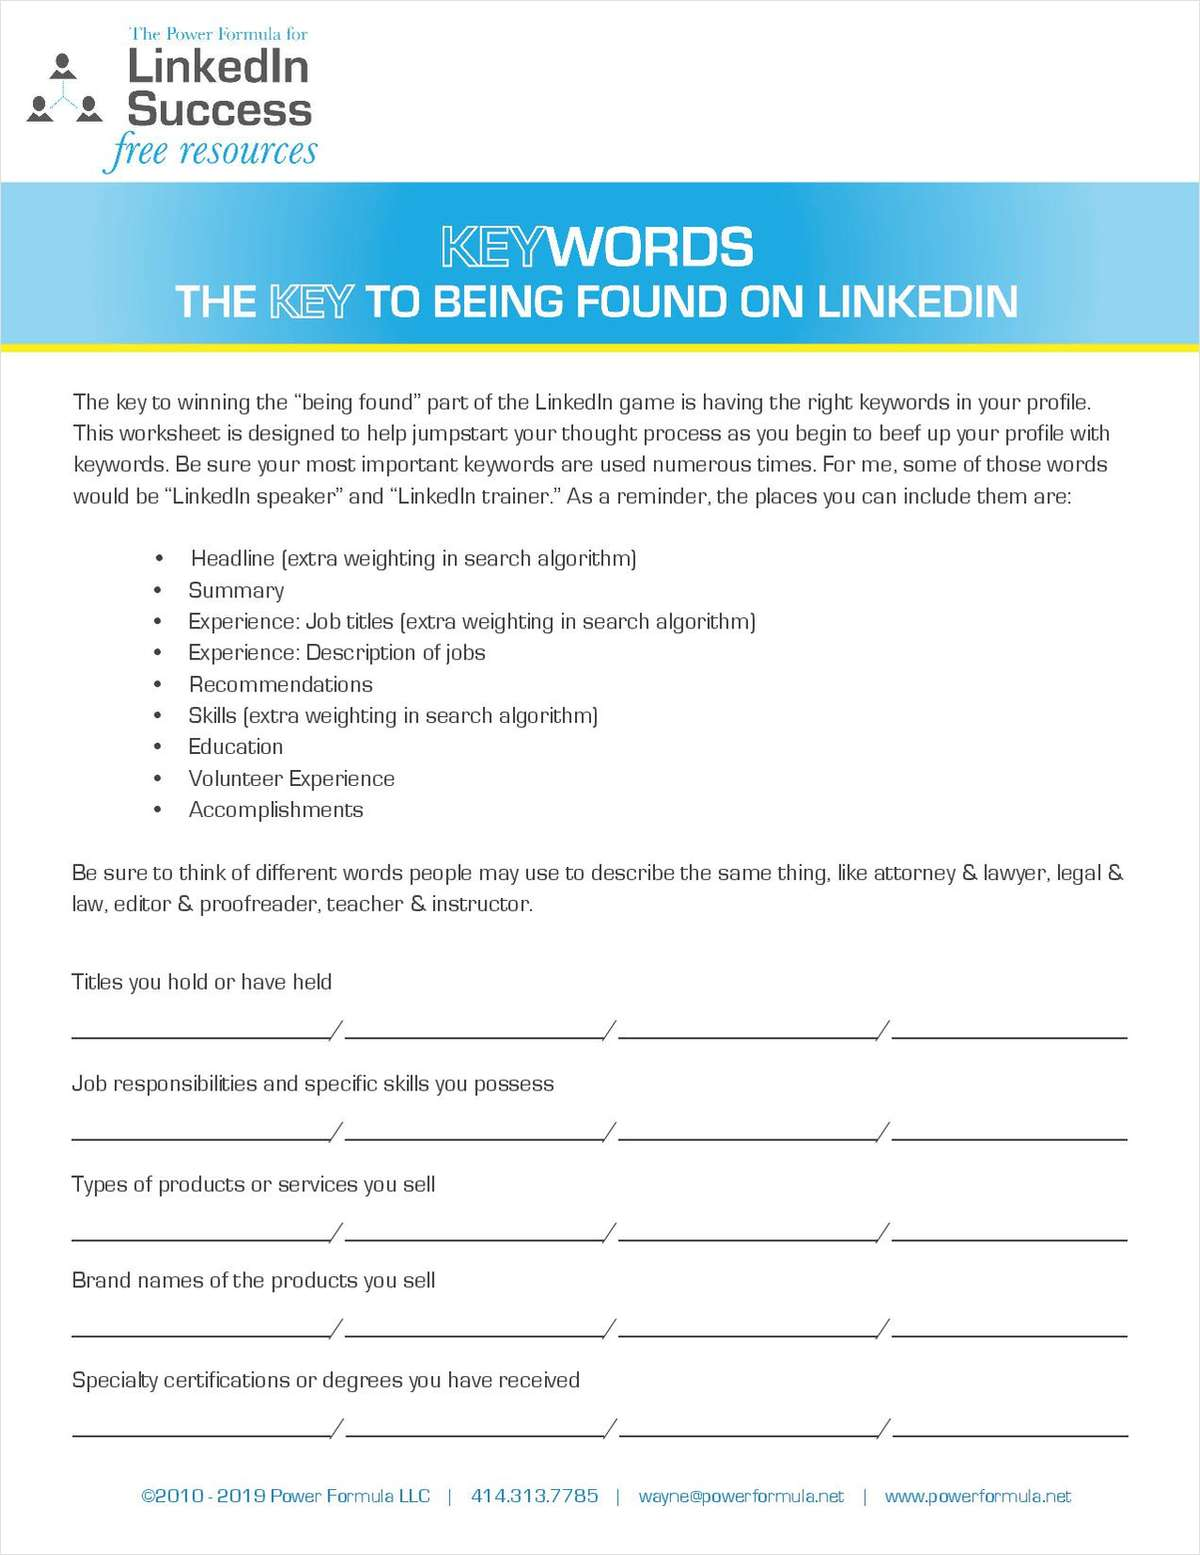 Keywords - The Key to Being Found on LinkedIn